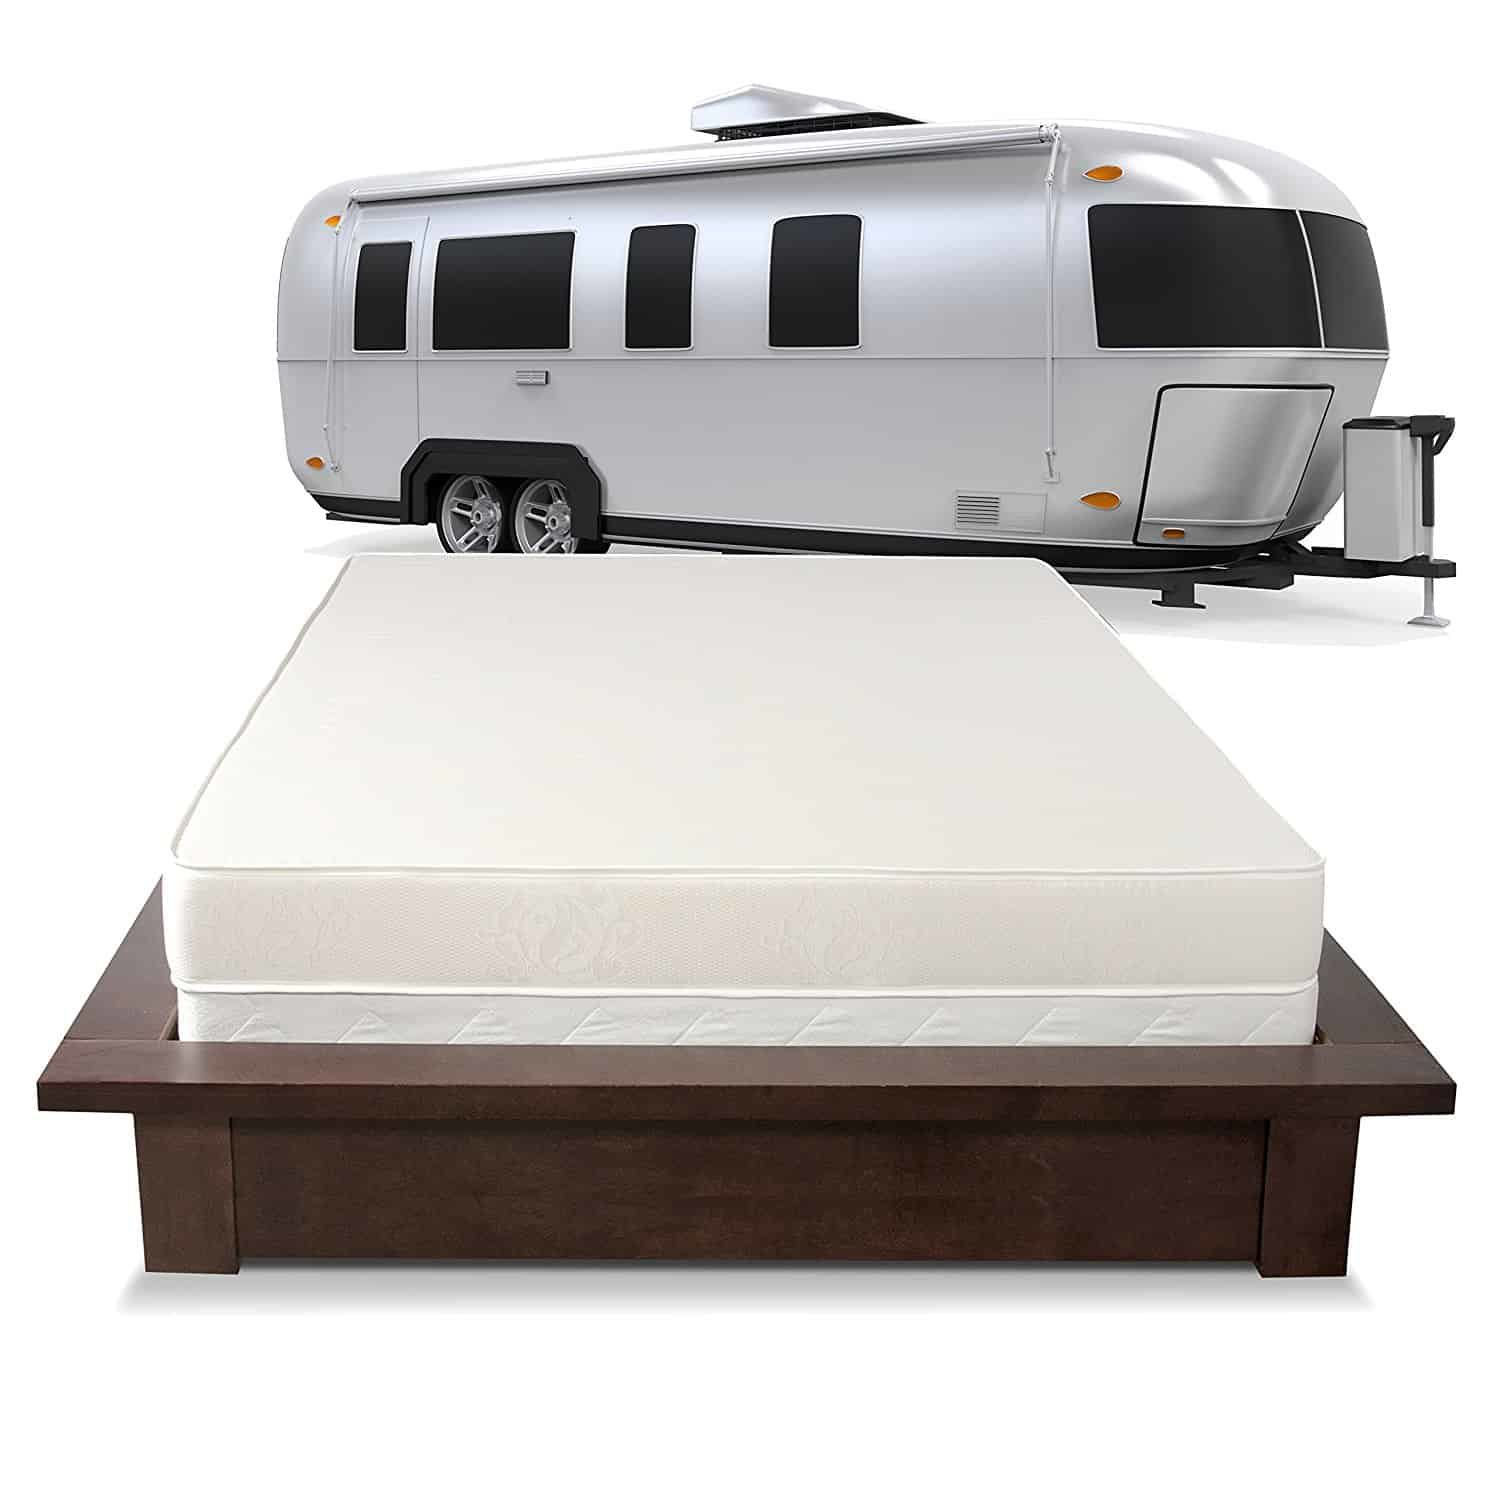 5 Inch Mattress Topper Rv Mattress Sizes Types And Places To Buy Them The Sleep Judge